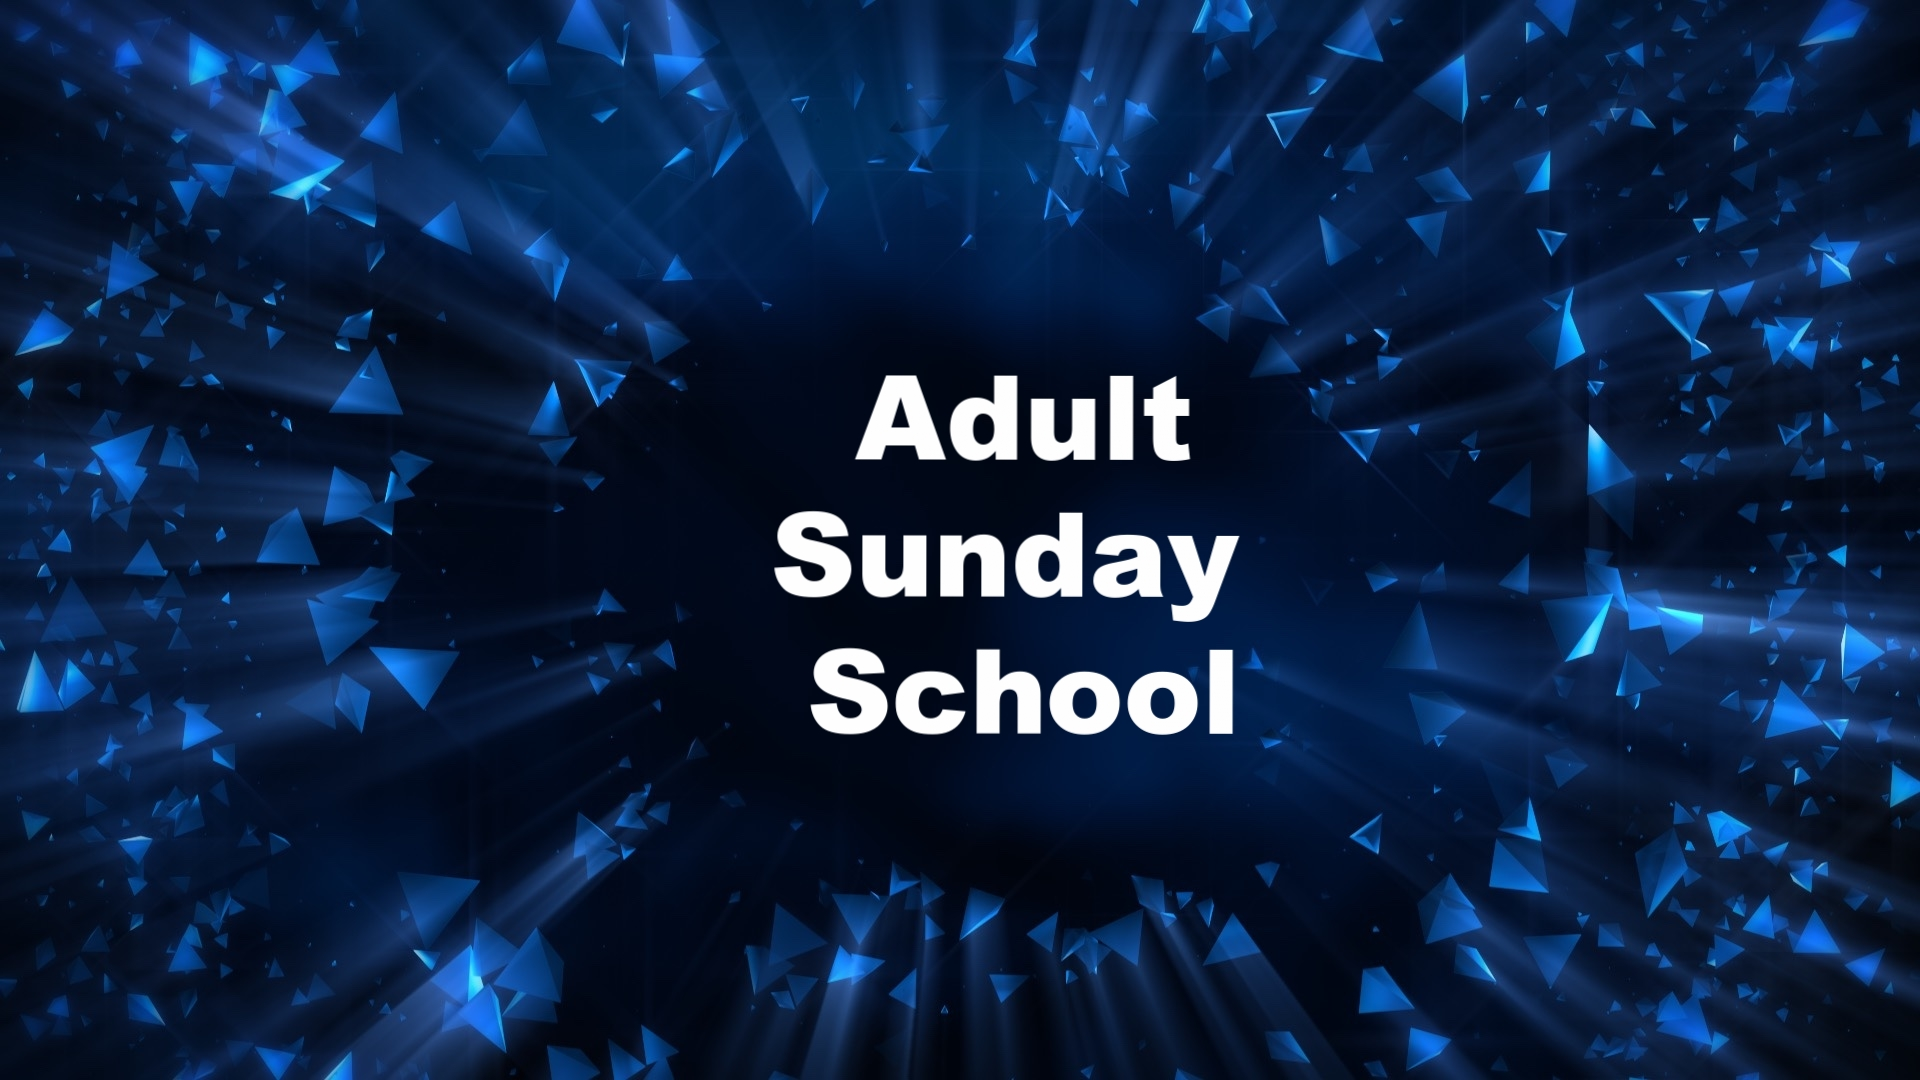 CLICK ON IMAGE:Adult Sunday School